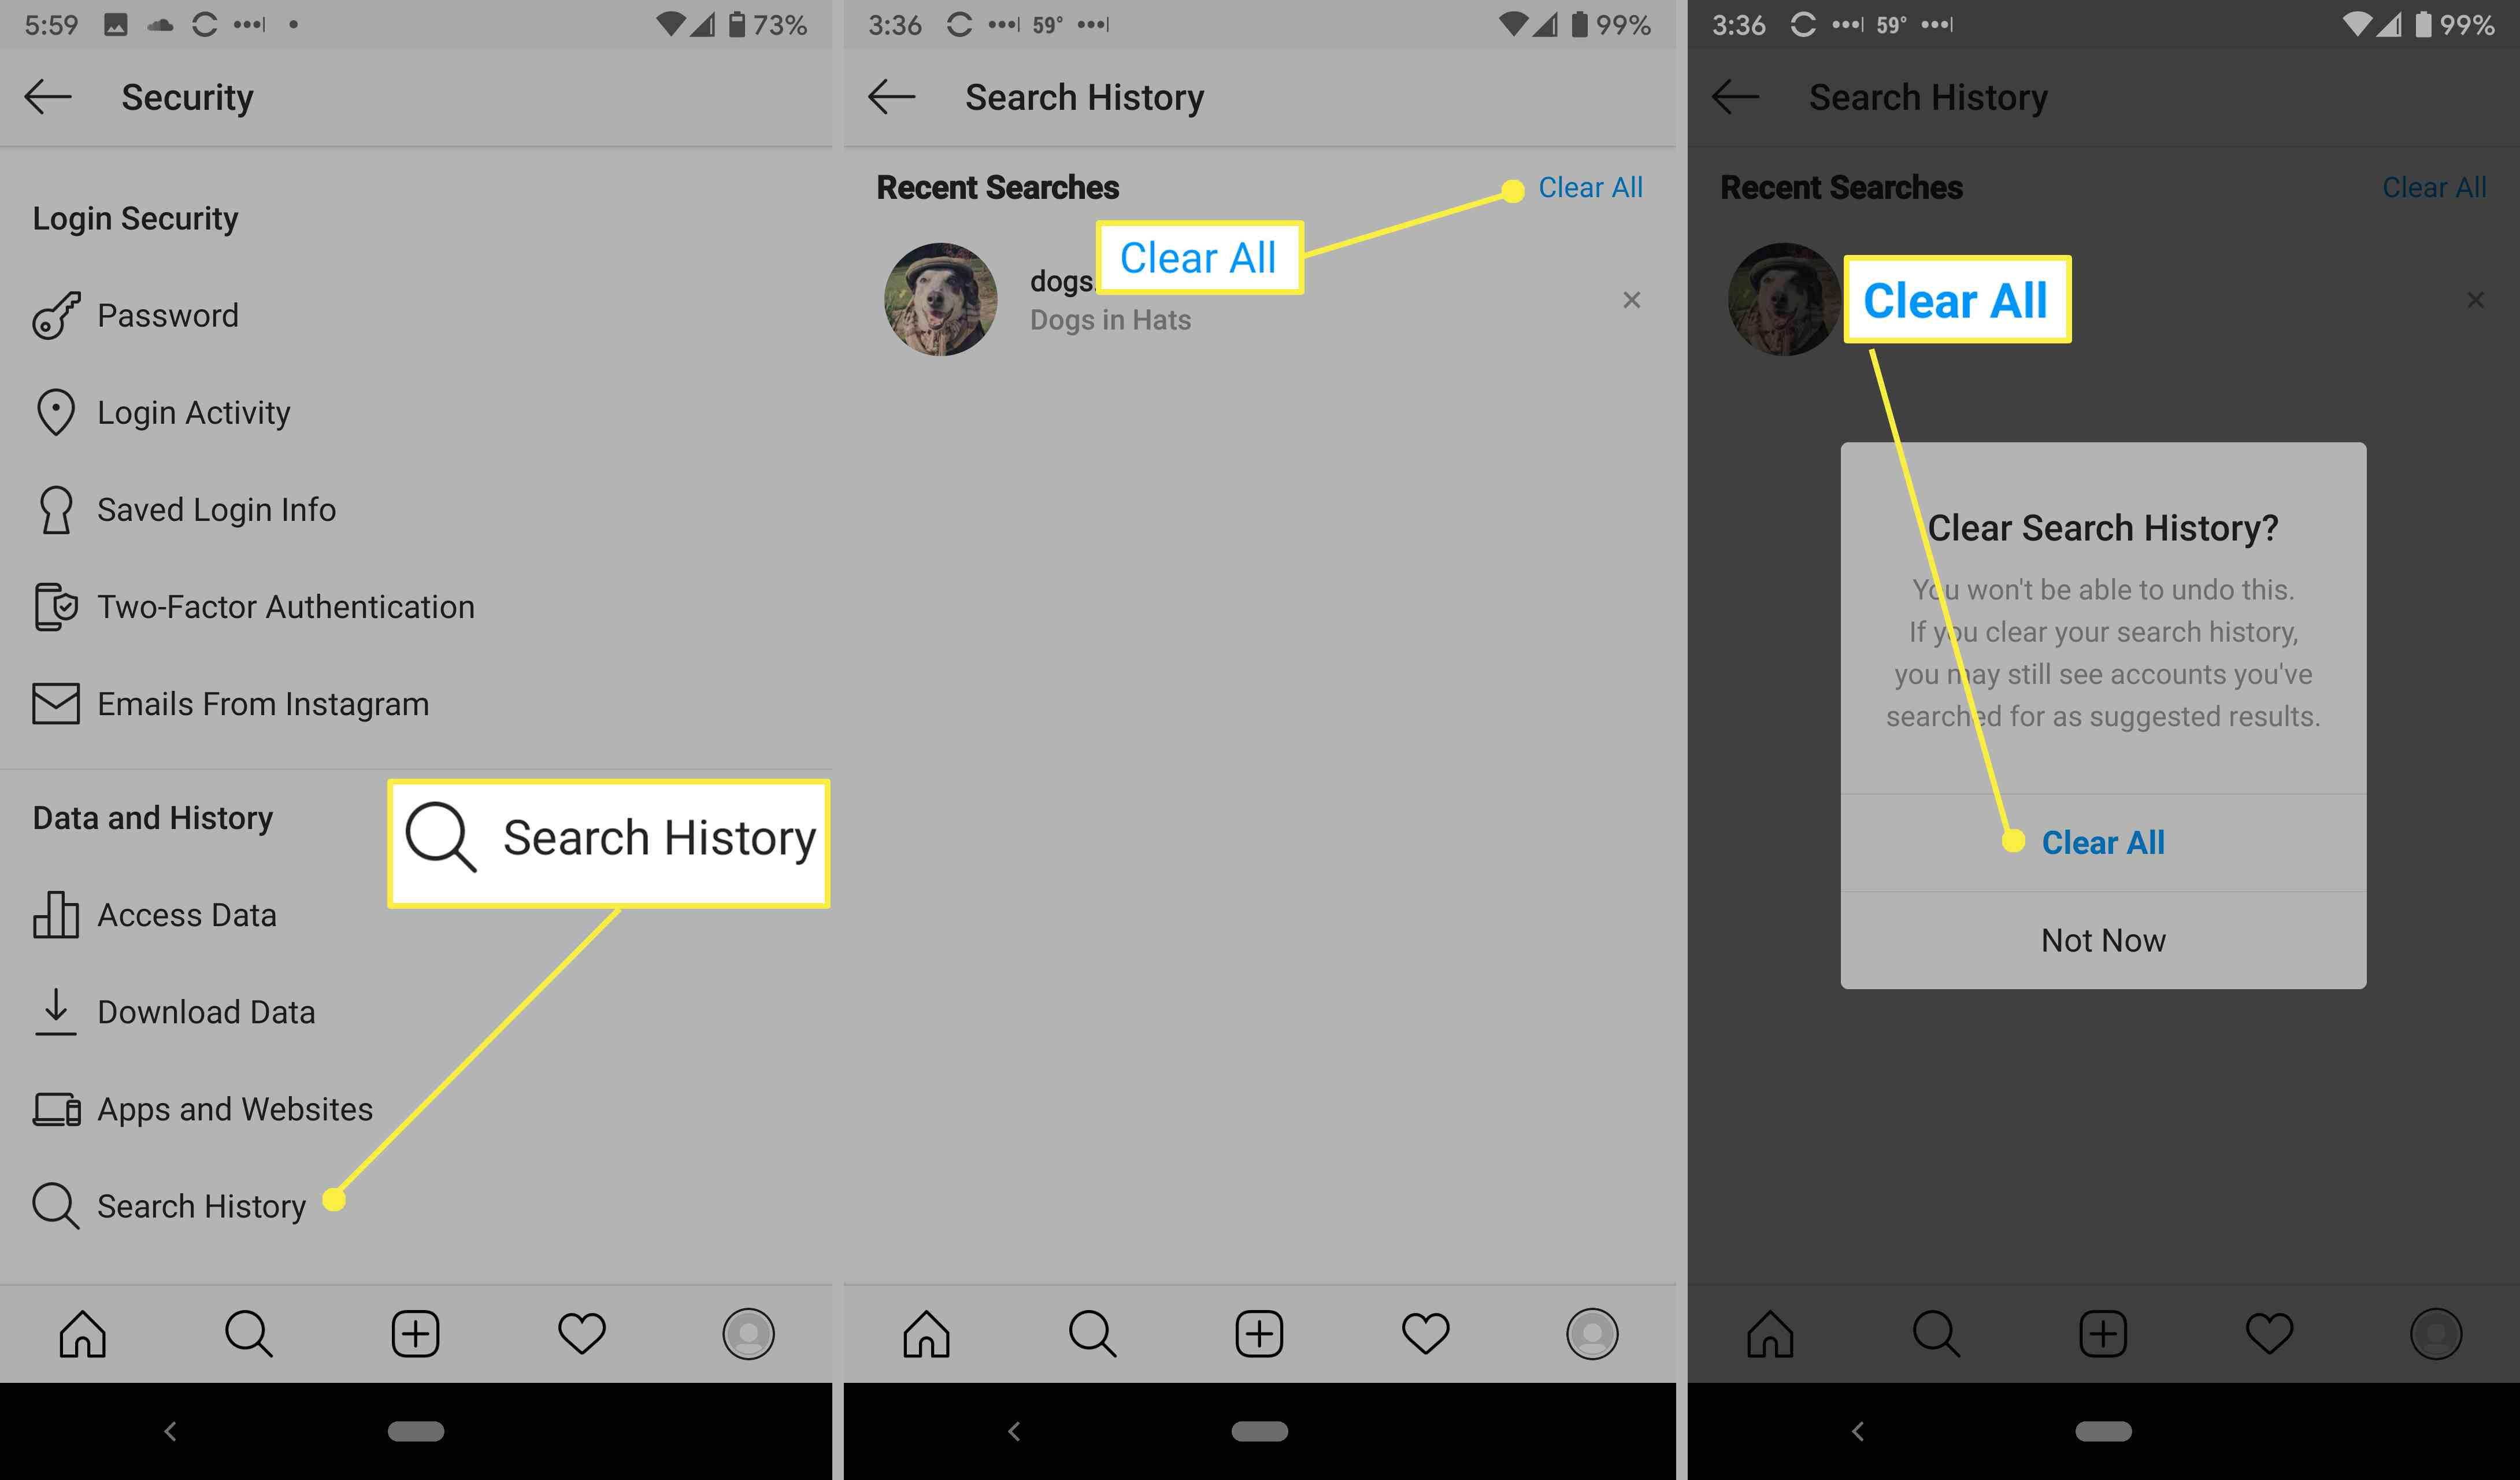 Clearing Instagram search history in the app.